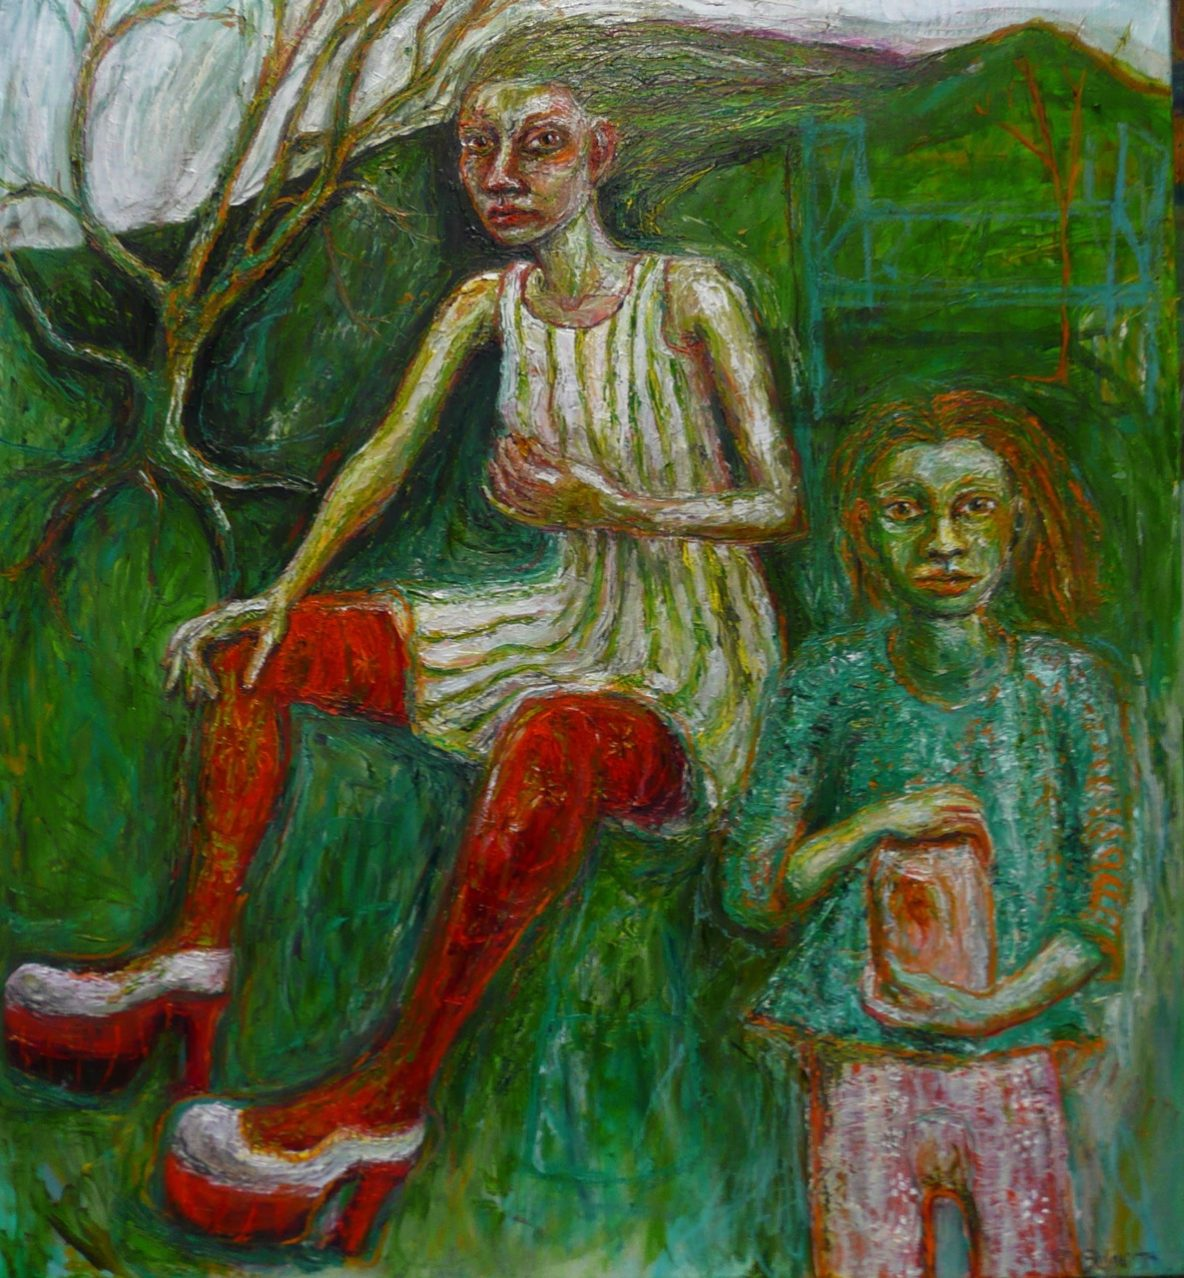 Woman and child with firefly